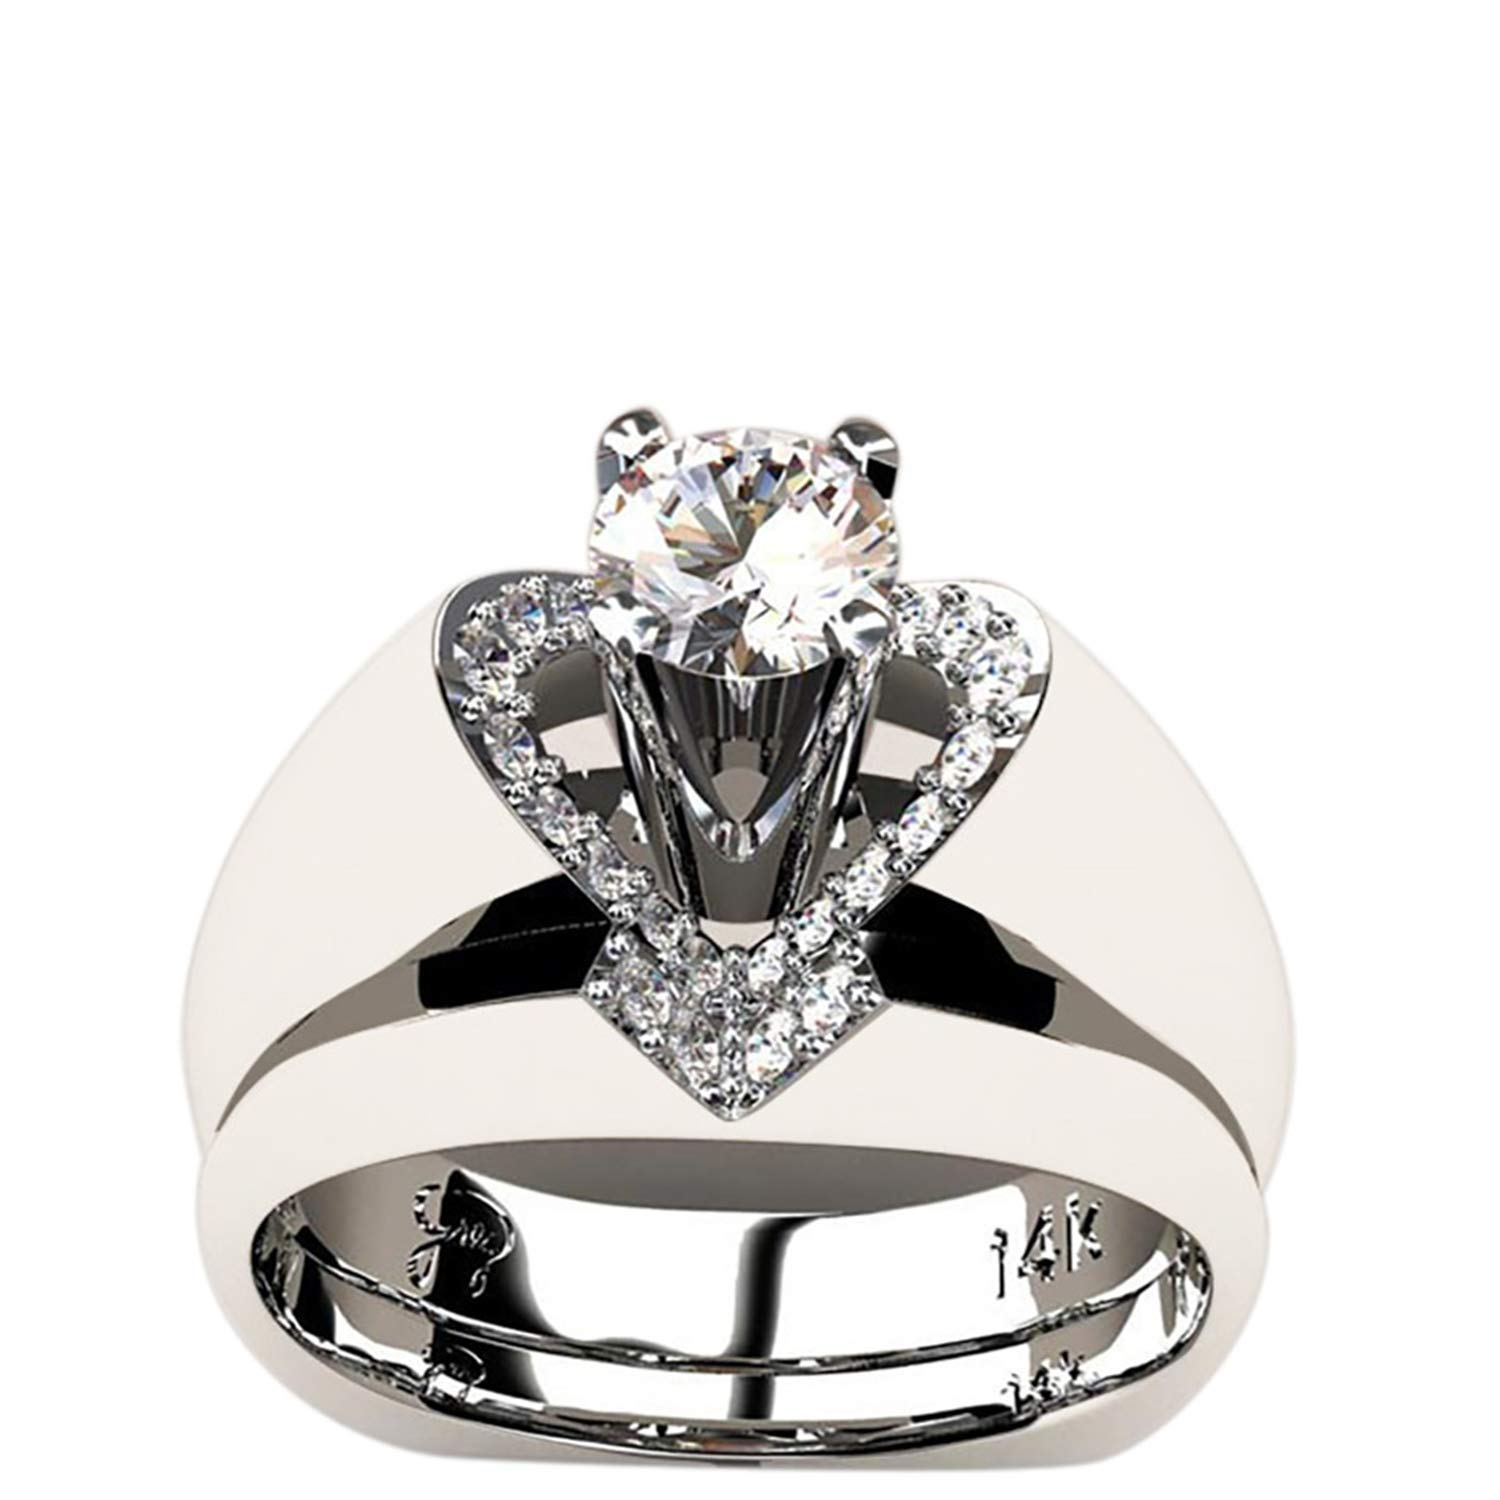 HUAMING Delicate Women Fashion 925 Sterling Silver Creative Heart Shaped Diamond Ring White Sapphire Diamond Ring Engagement Wedding Jewelry Size (Silver, 6)